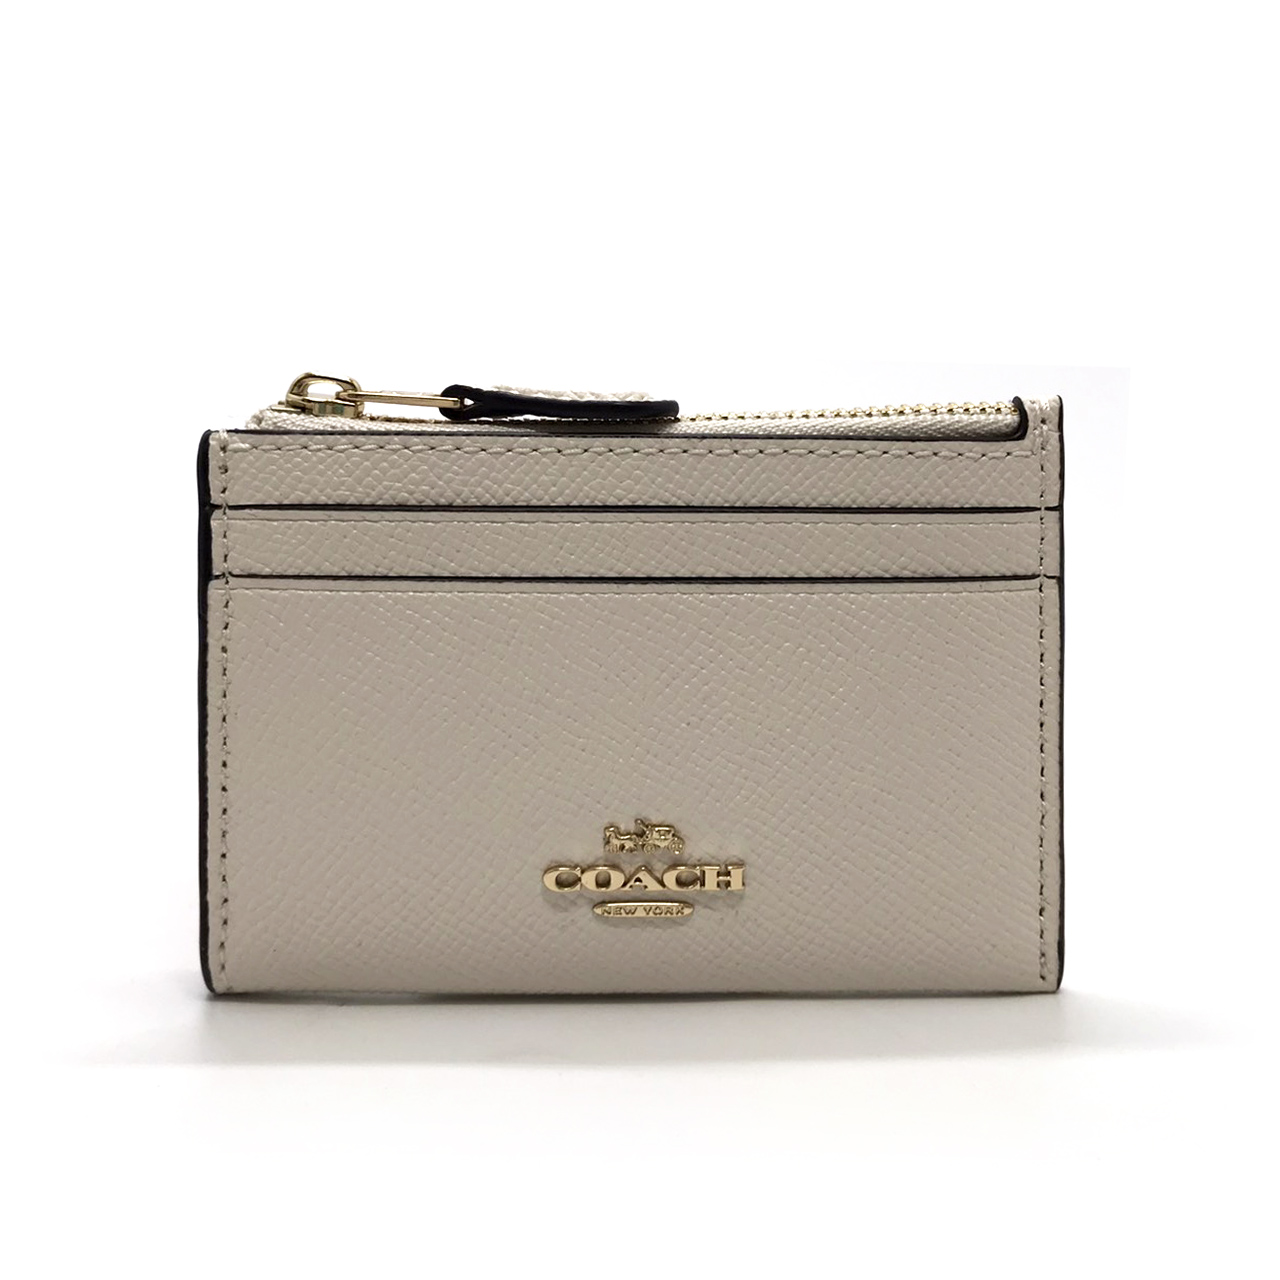 New Coach Mini Skinny ID Case in Chalk Leather GHW